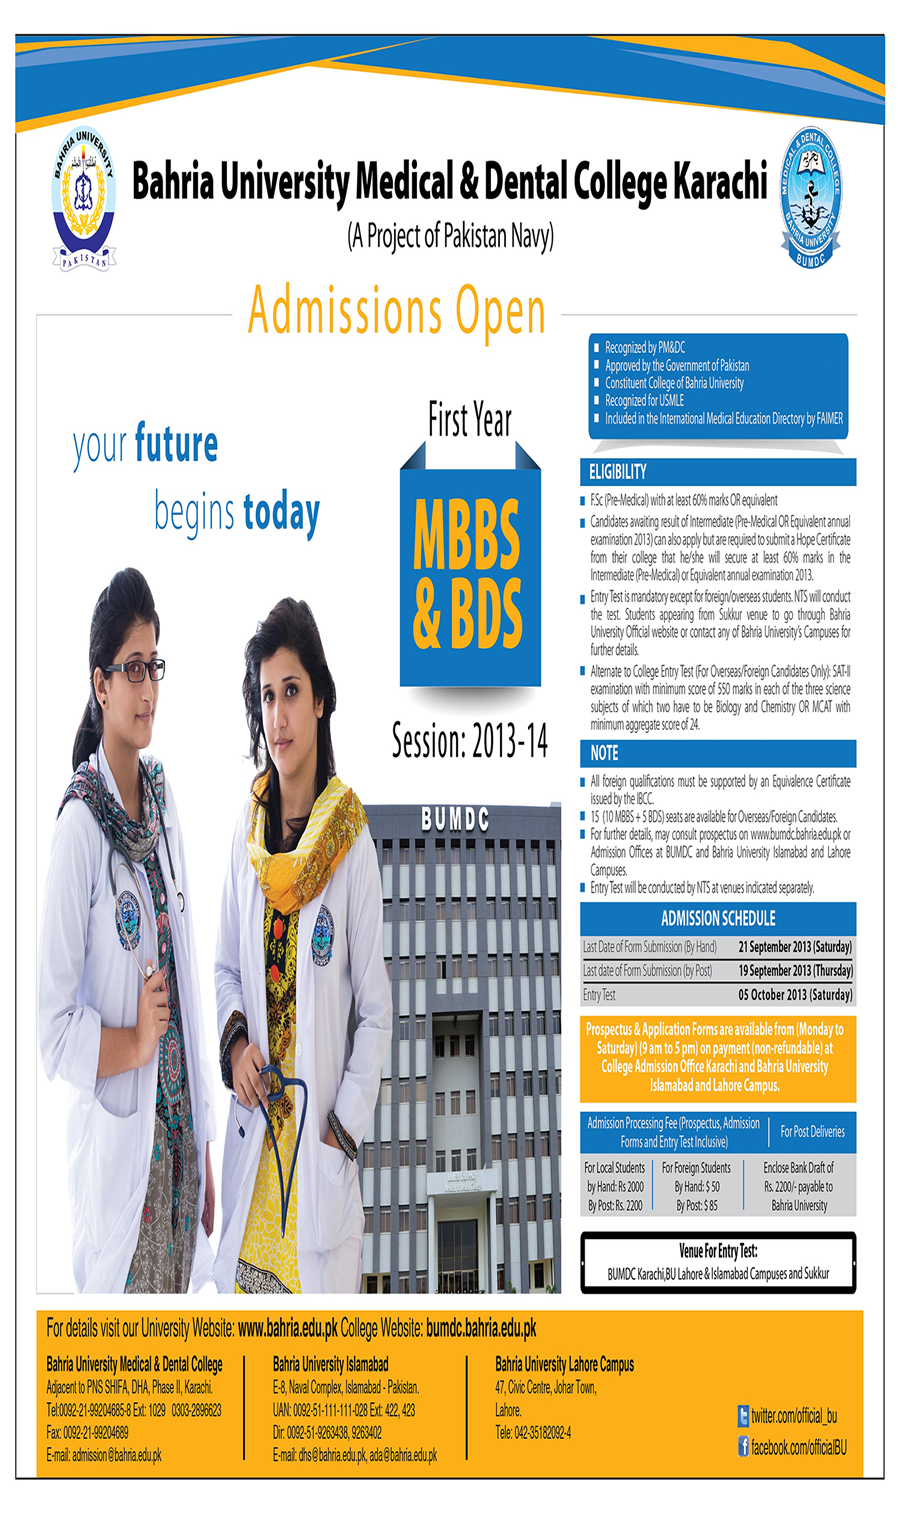 Bahria University Medical & Dental College Karachi Admission 2013